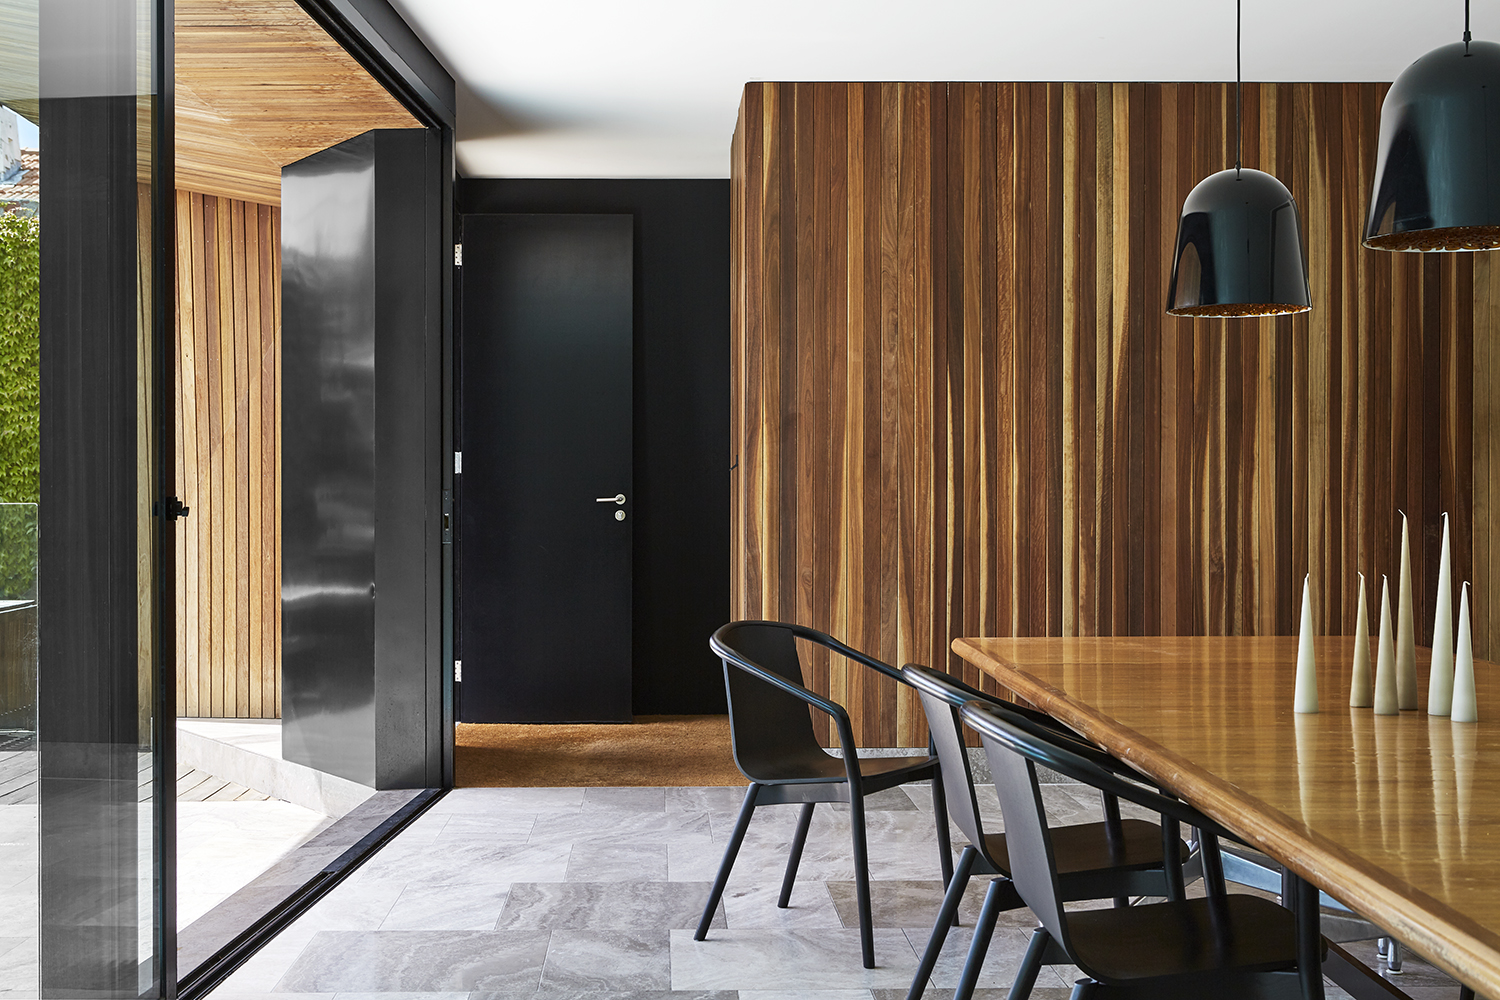 Through The Design's Innovative Use Of Space, In Which Every Square Centimetre Is Intentional.